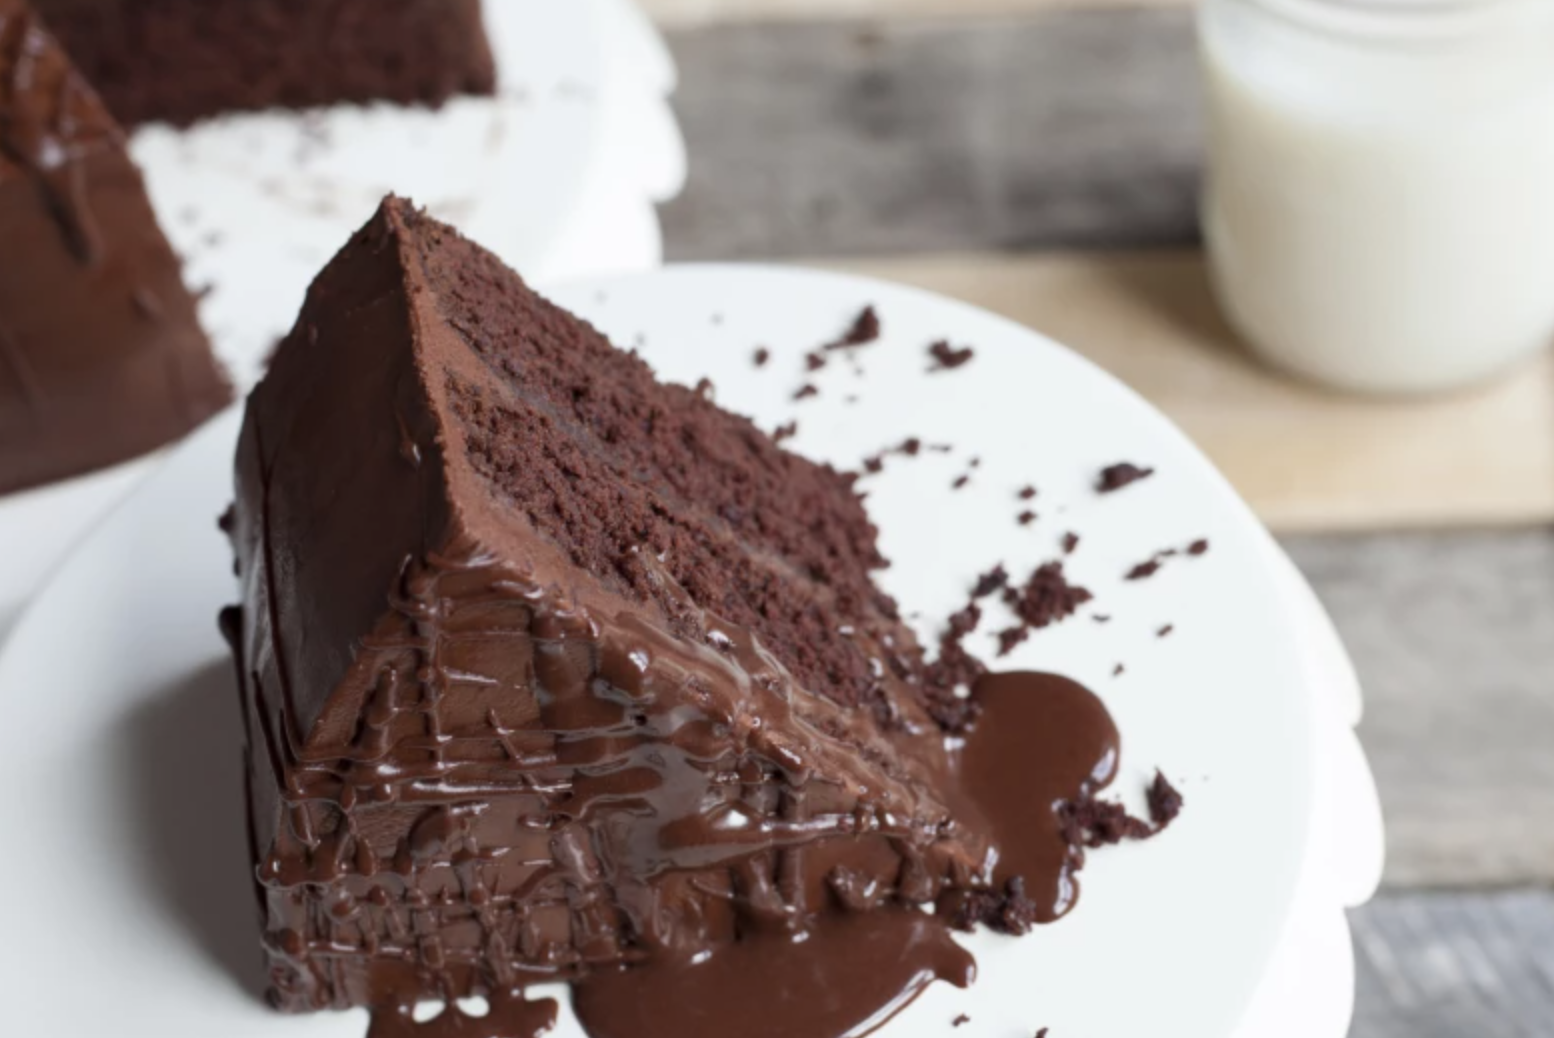 chocolate cake slice on a plate